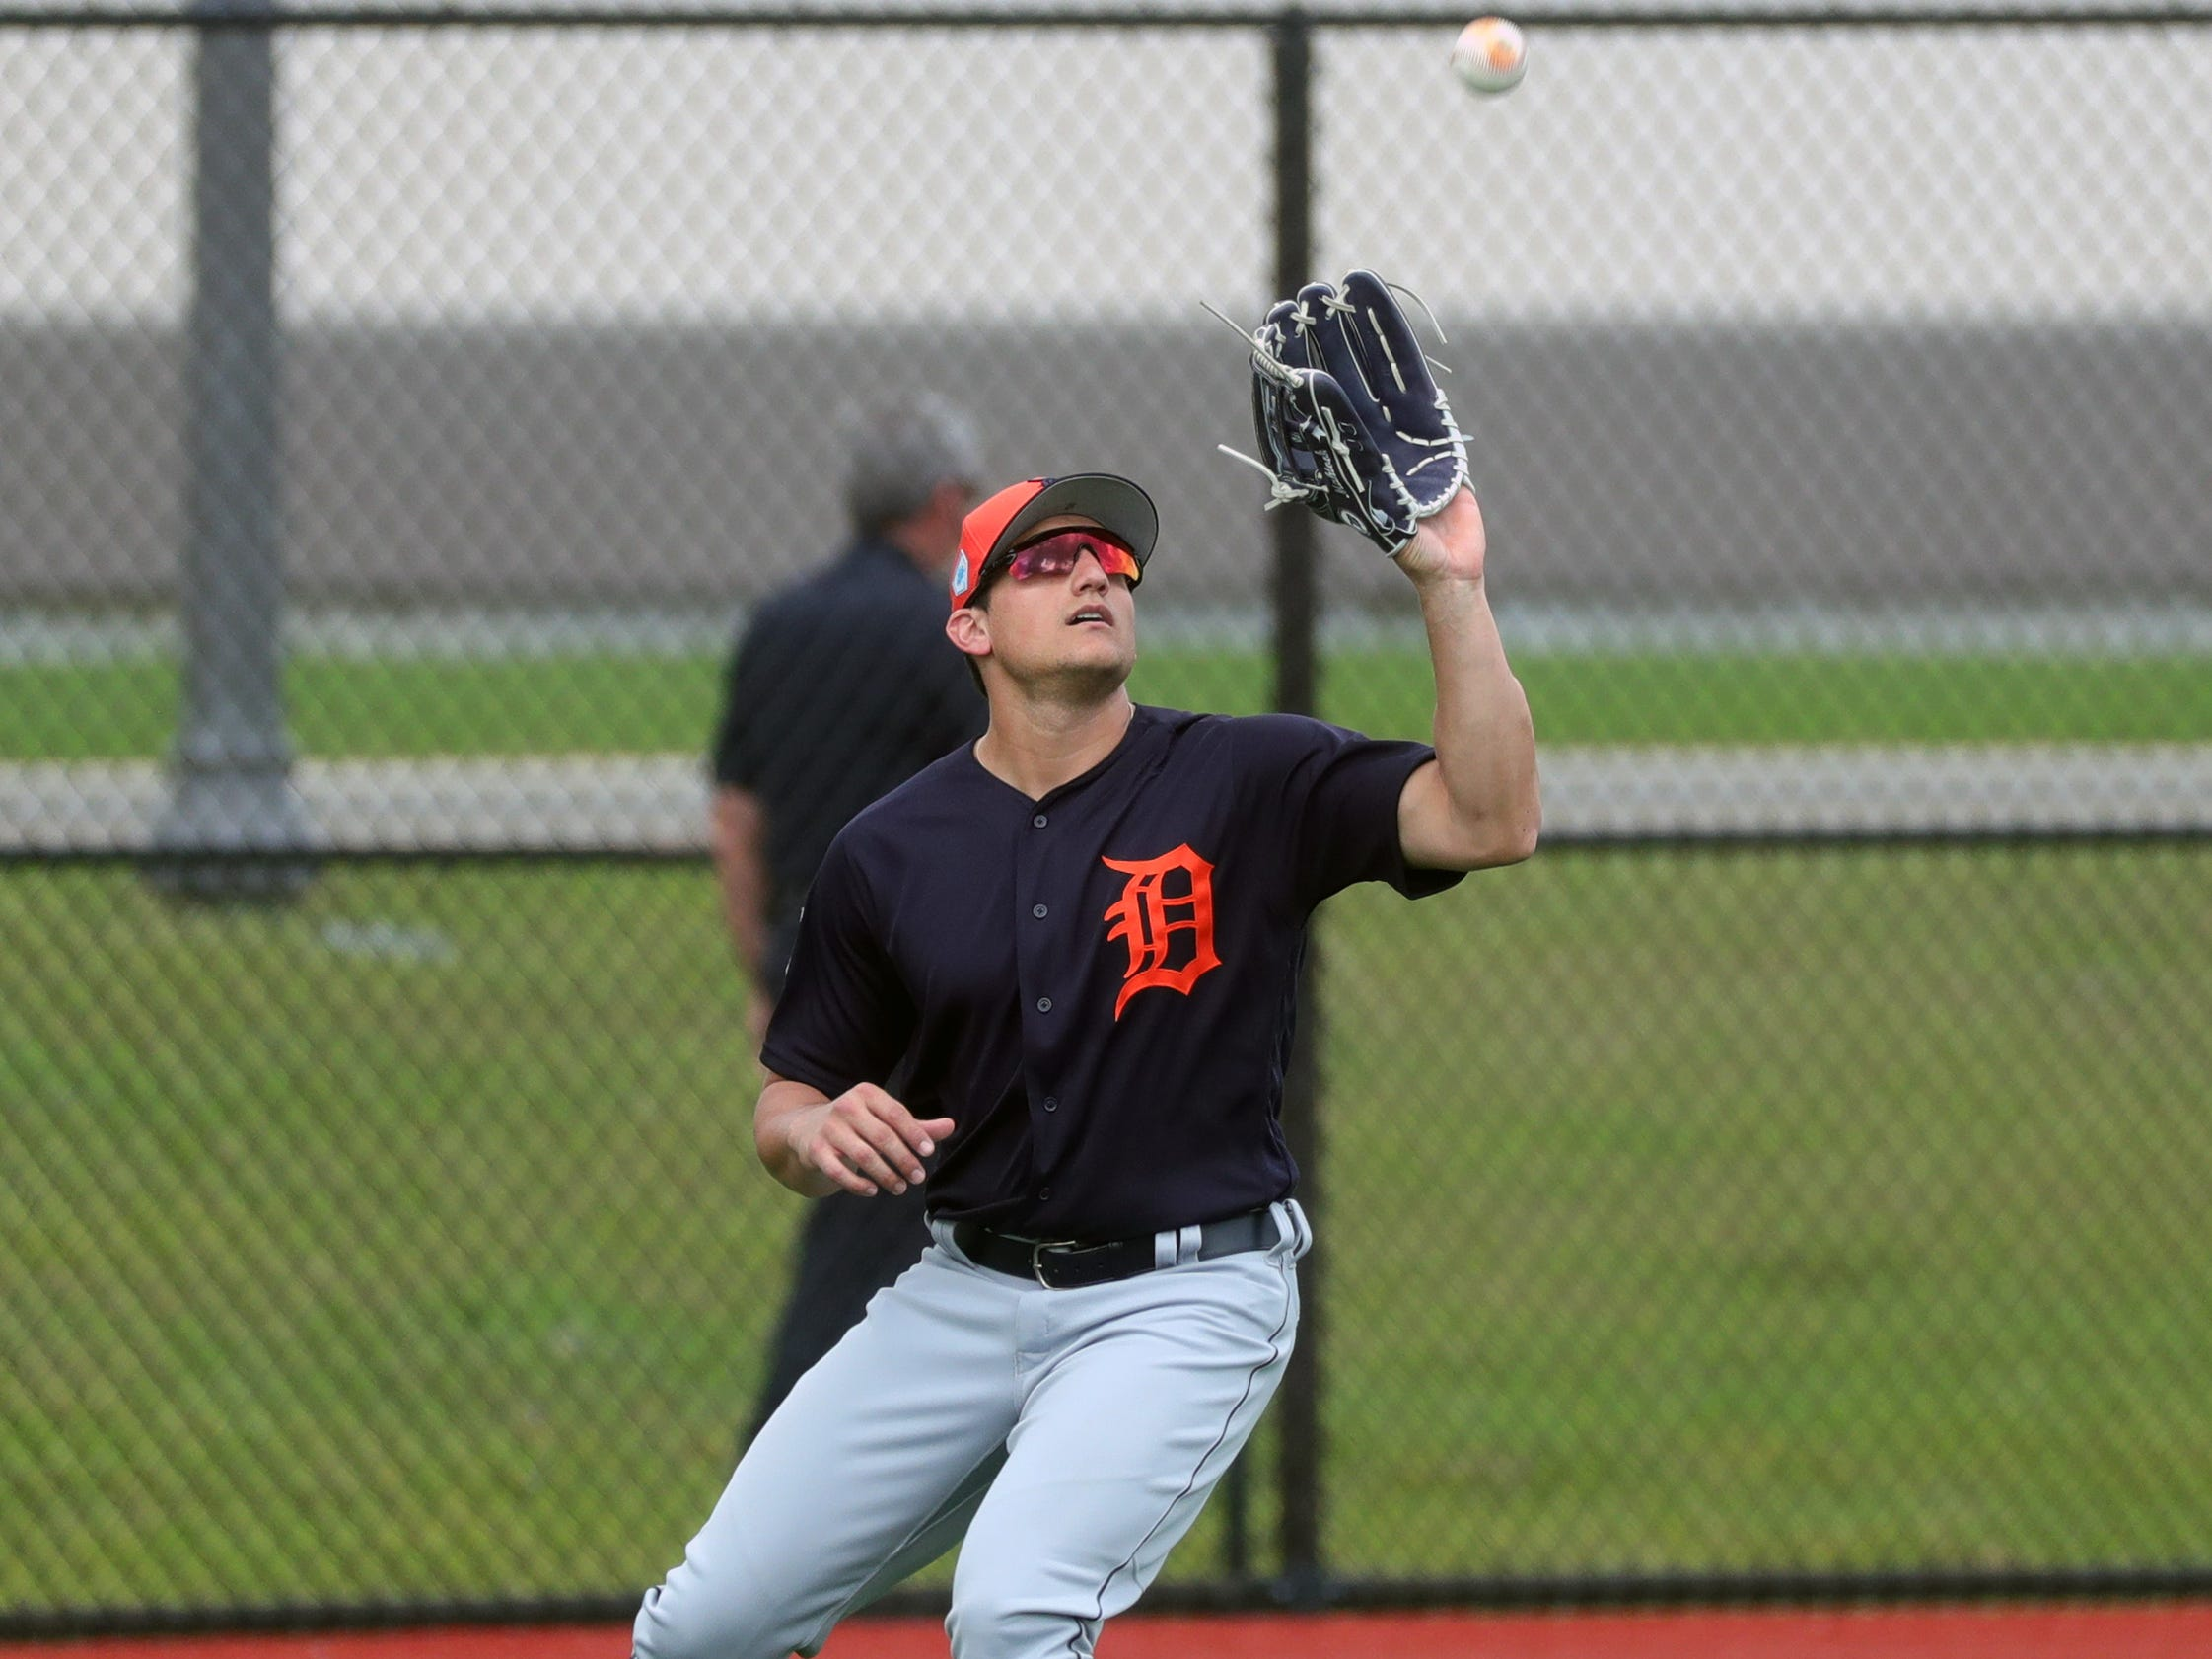 Tigers outfielder Mikie Mahtook fields a fly ball during spring training Wednesday, Feb. 20, 2019, at Joker Marchant Stadium in Lakeland, Fla.